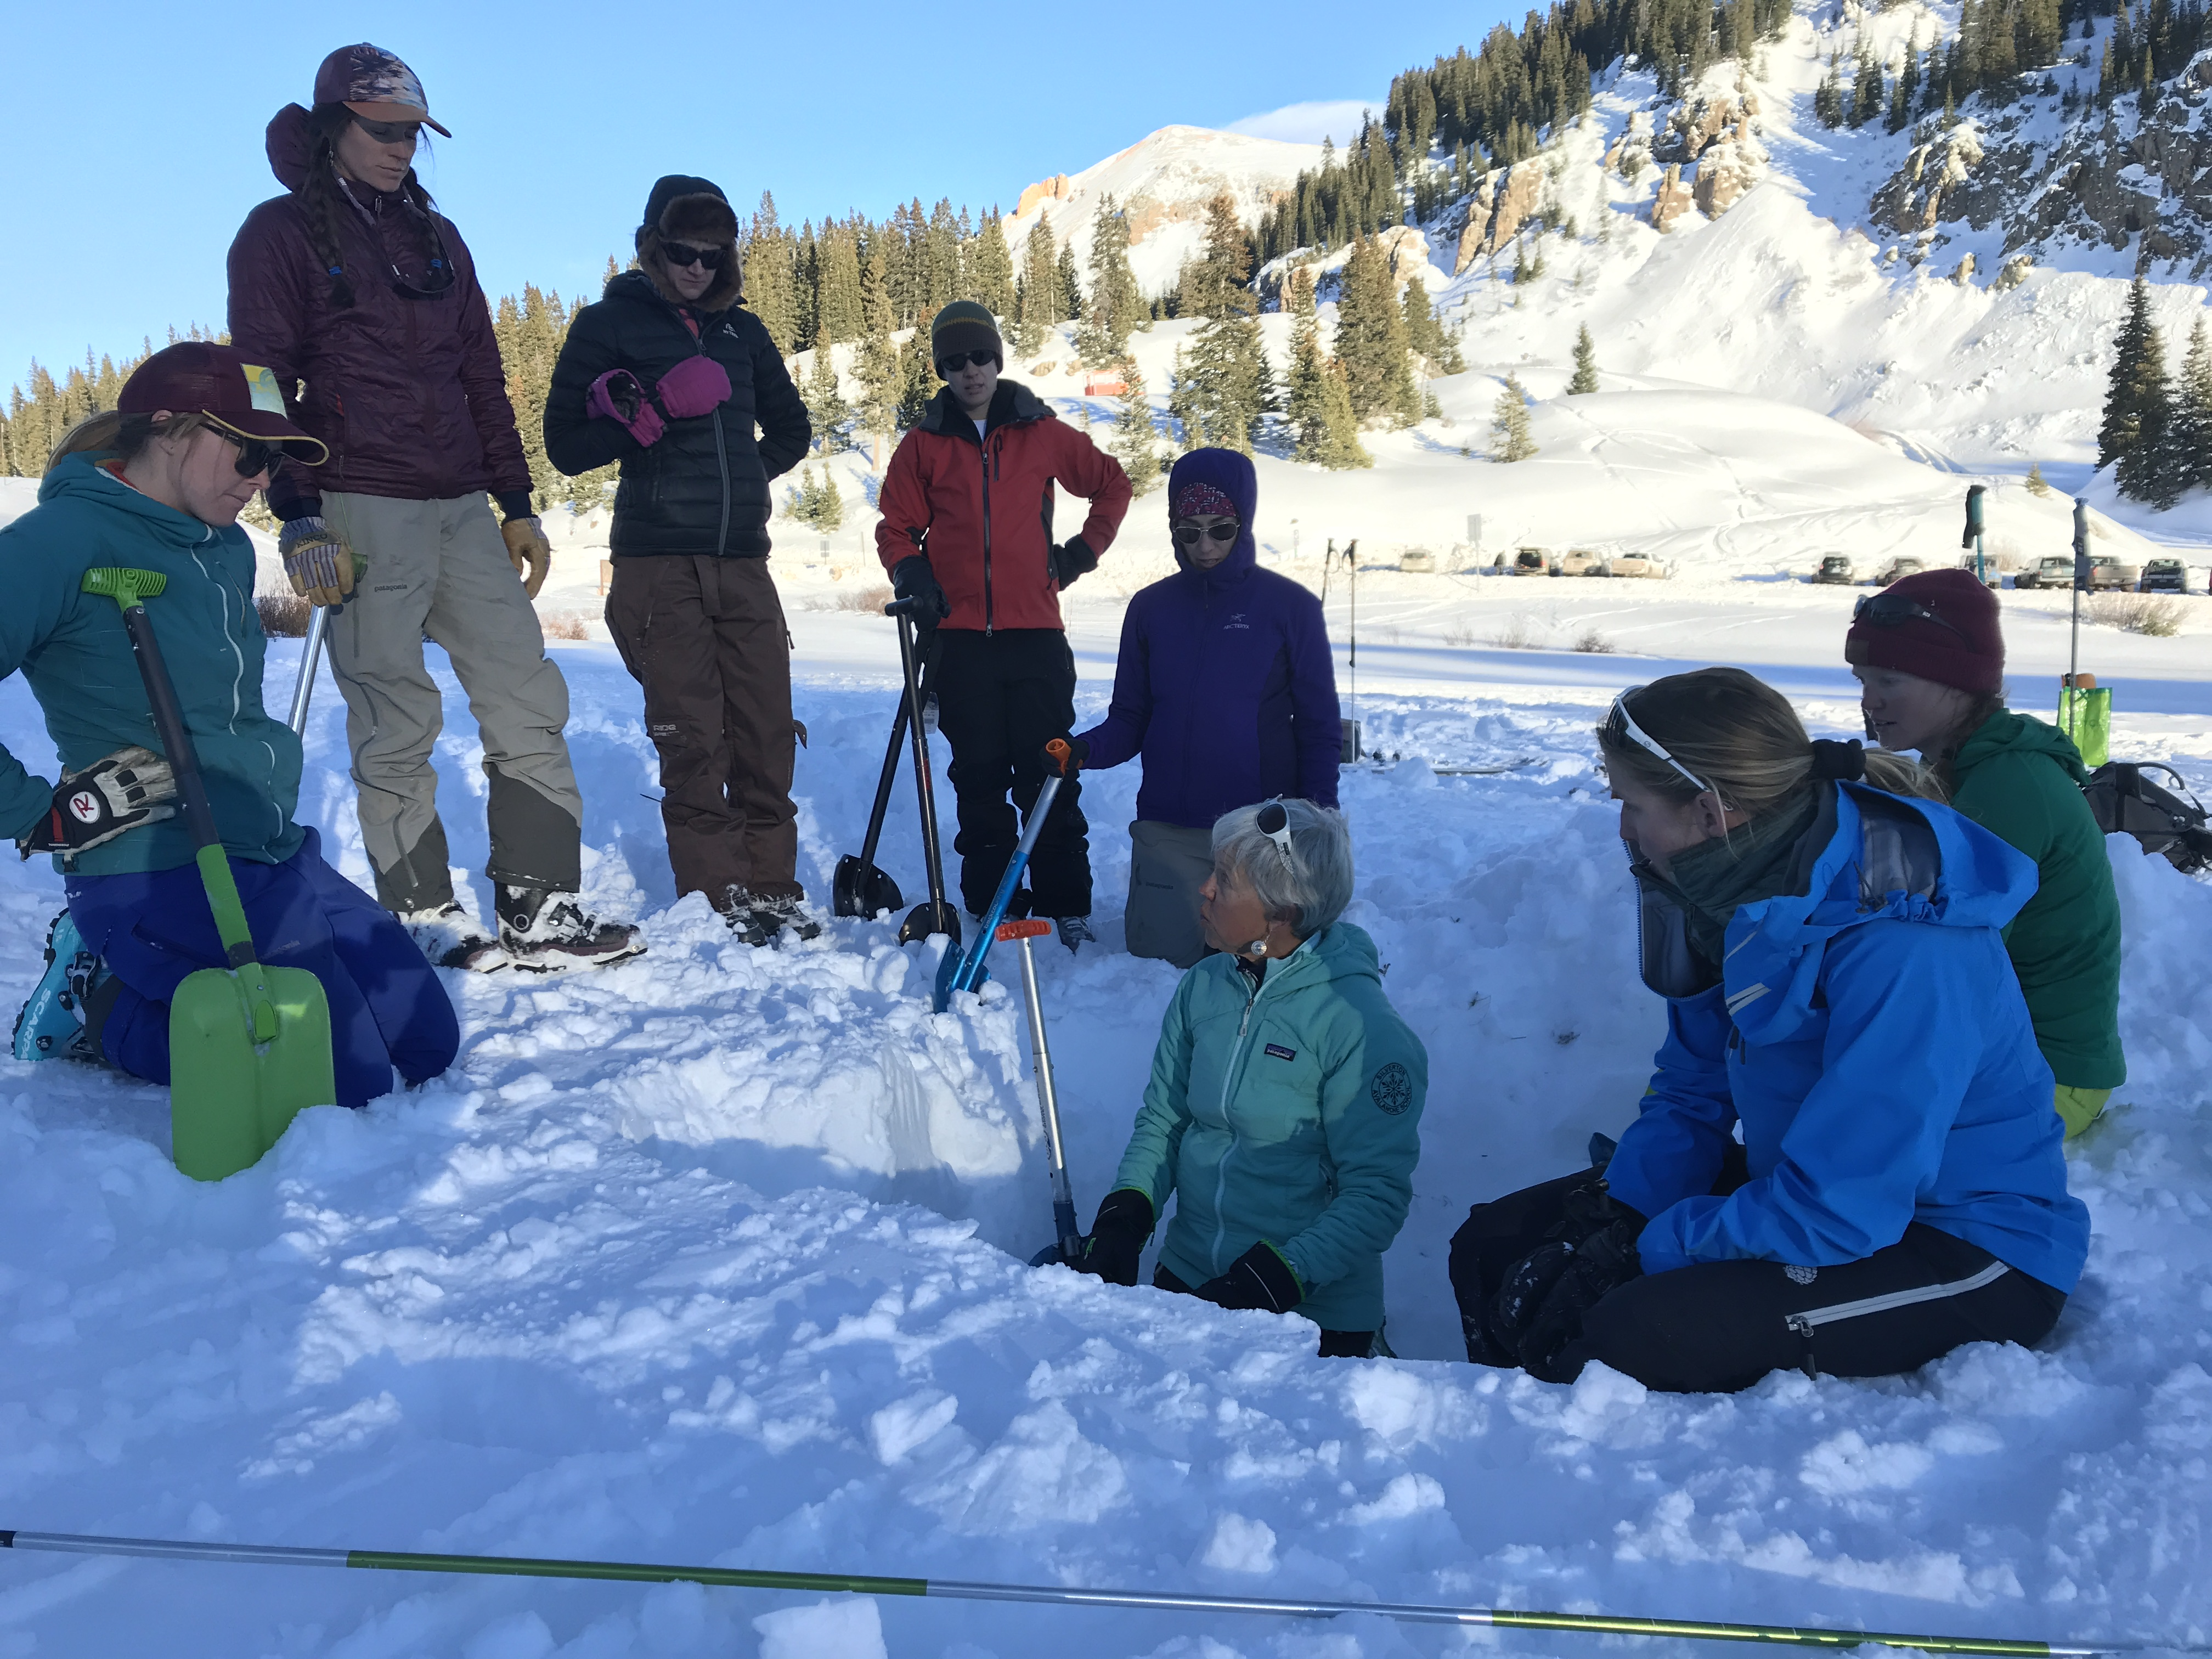 Chicks Climbing and Skiing Avalanche Rescue Course participants learning avalanche rescue skills in an all-female course